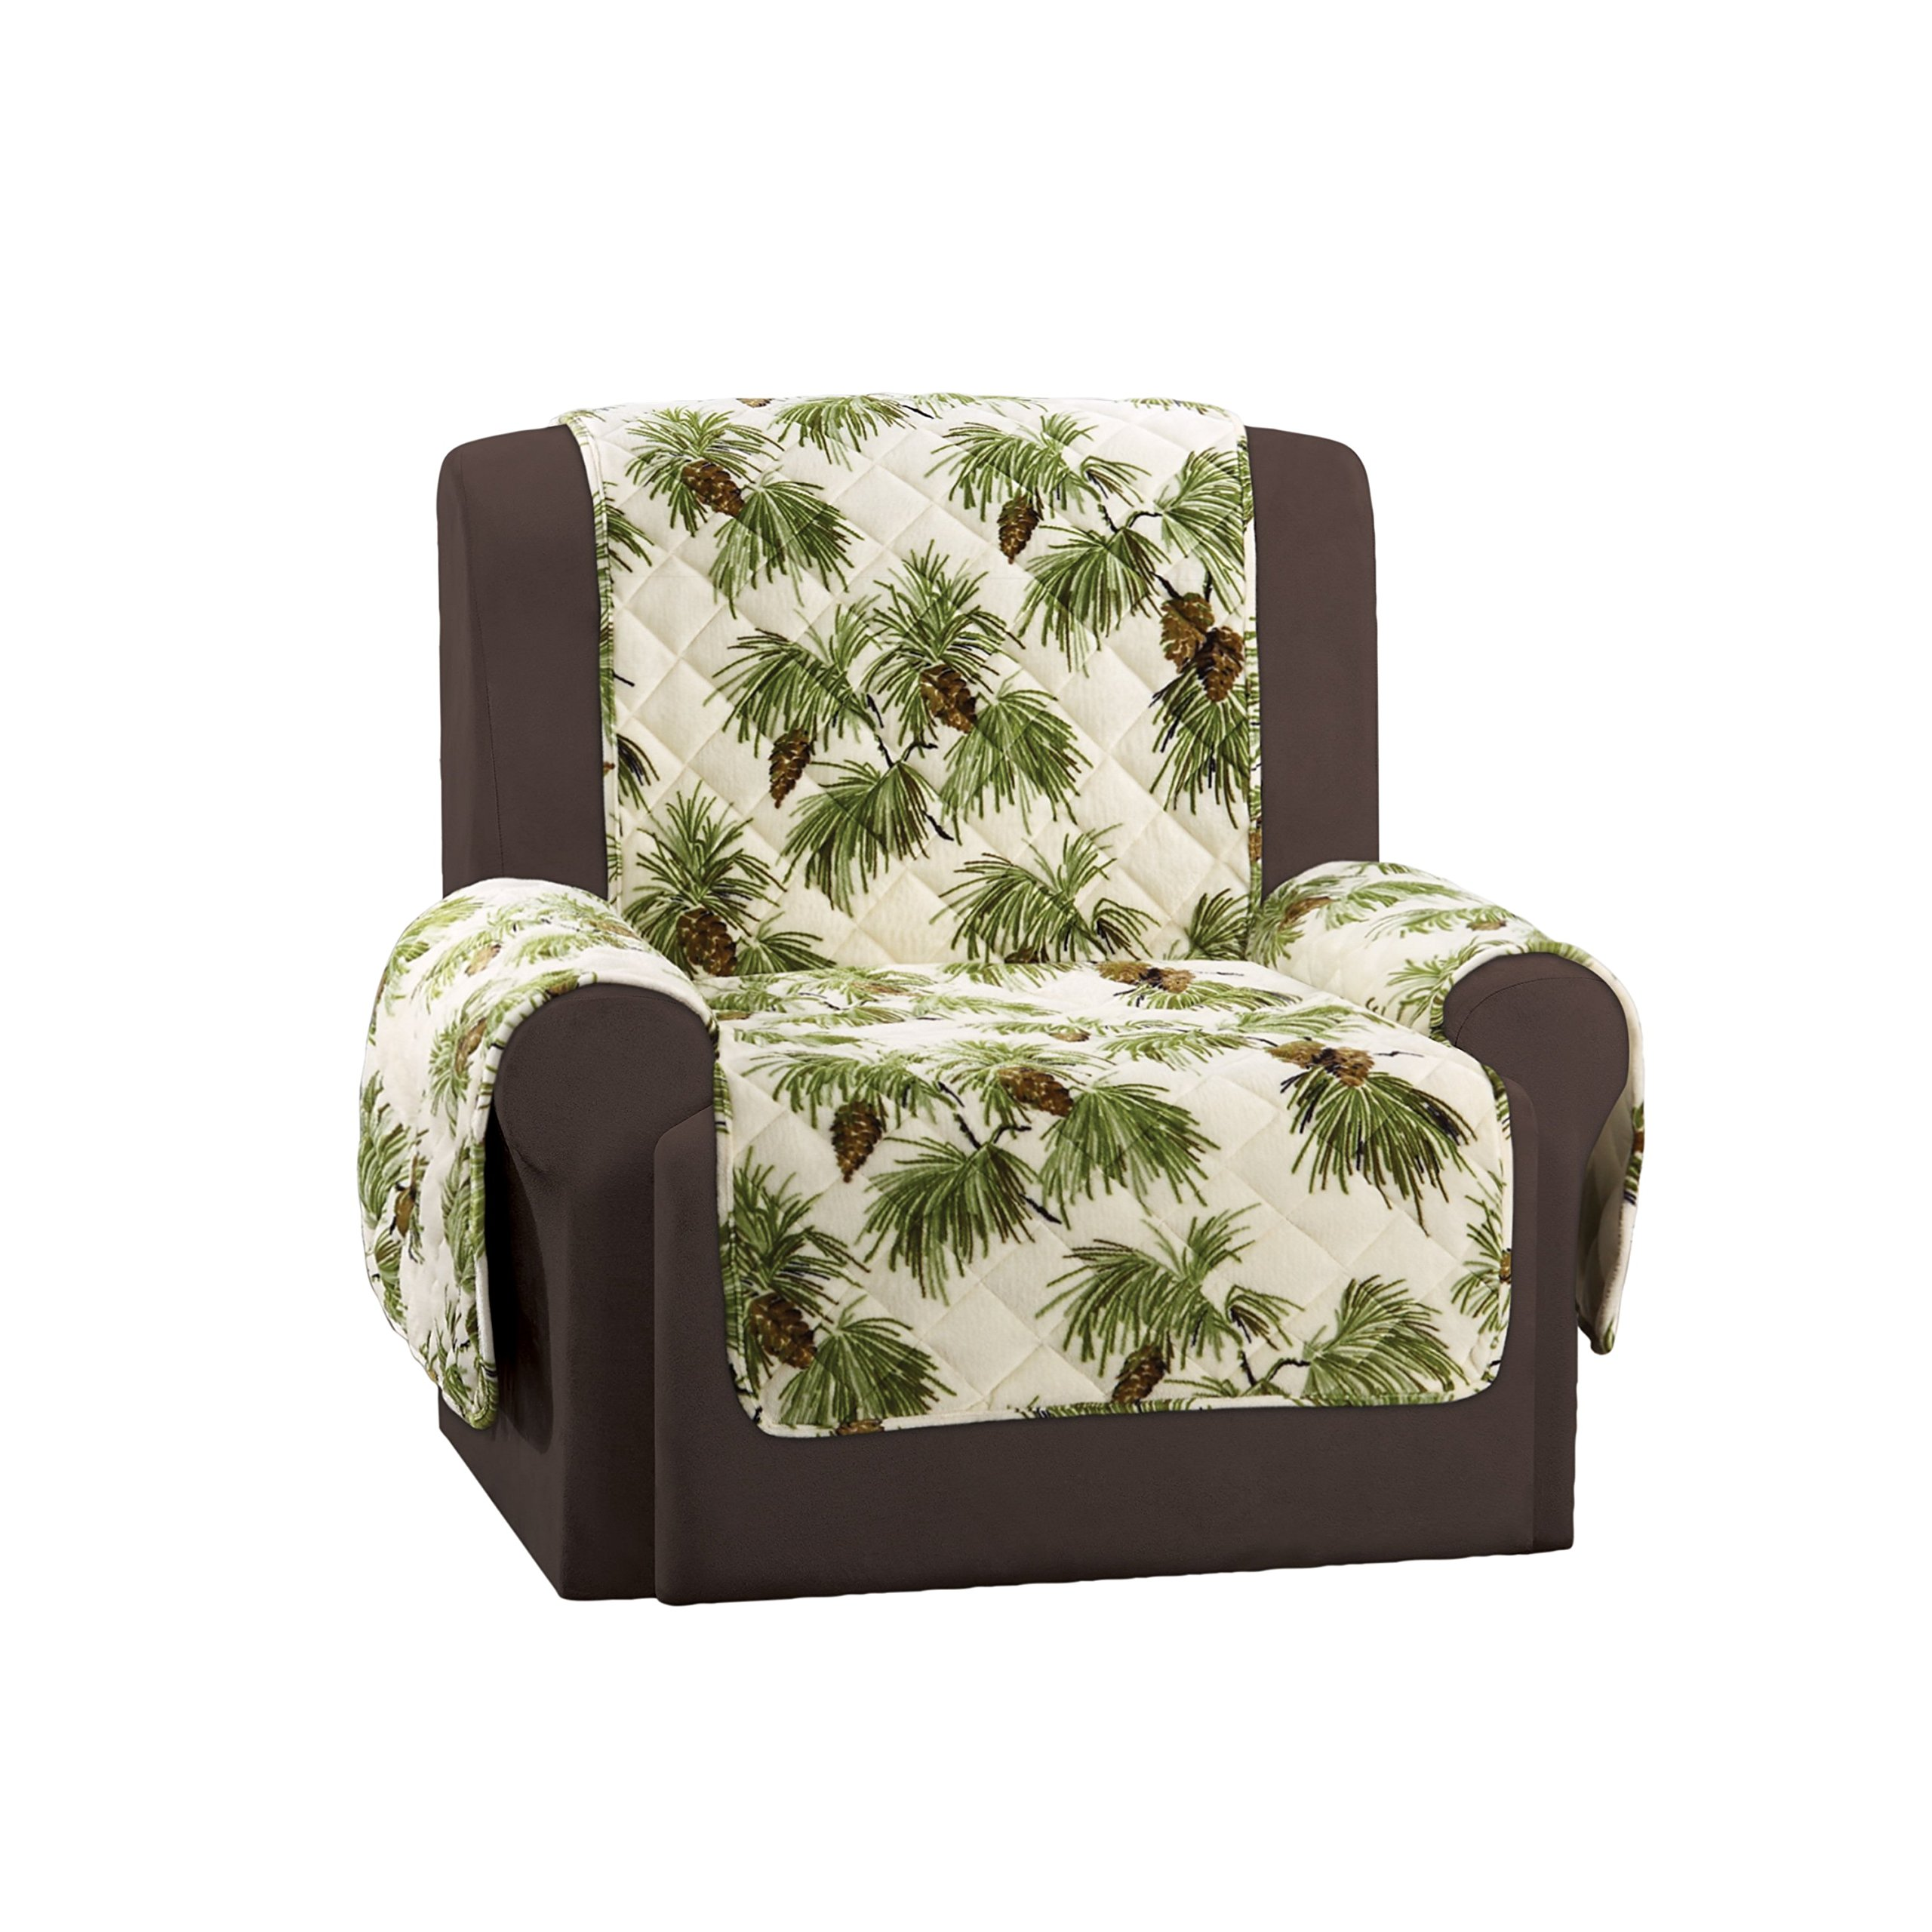 Sure Fit SF46454 Lodge Chair Pet Throw/Slipcover with Arms, Pinecone Ivory